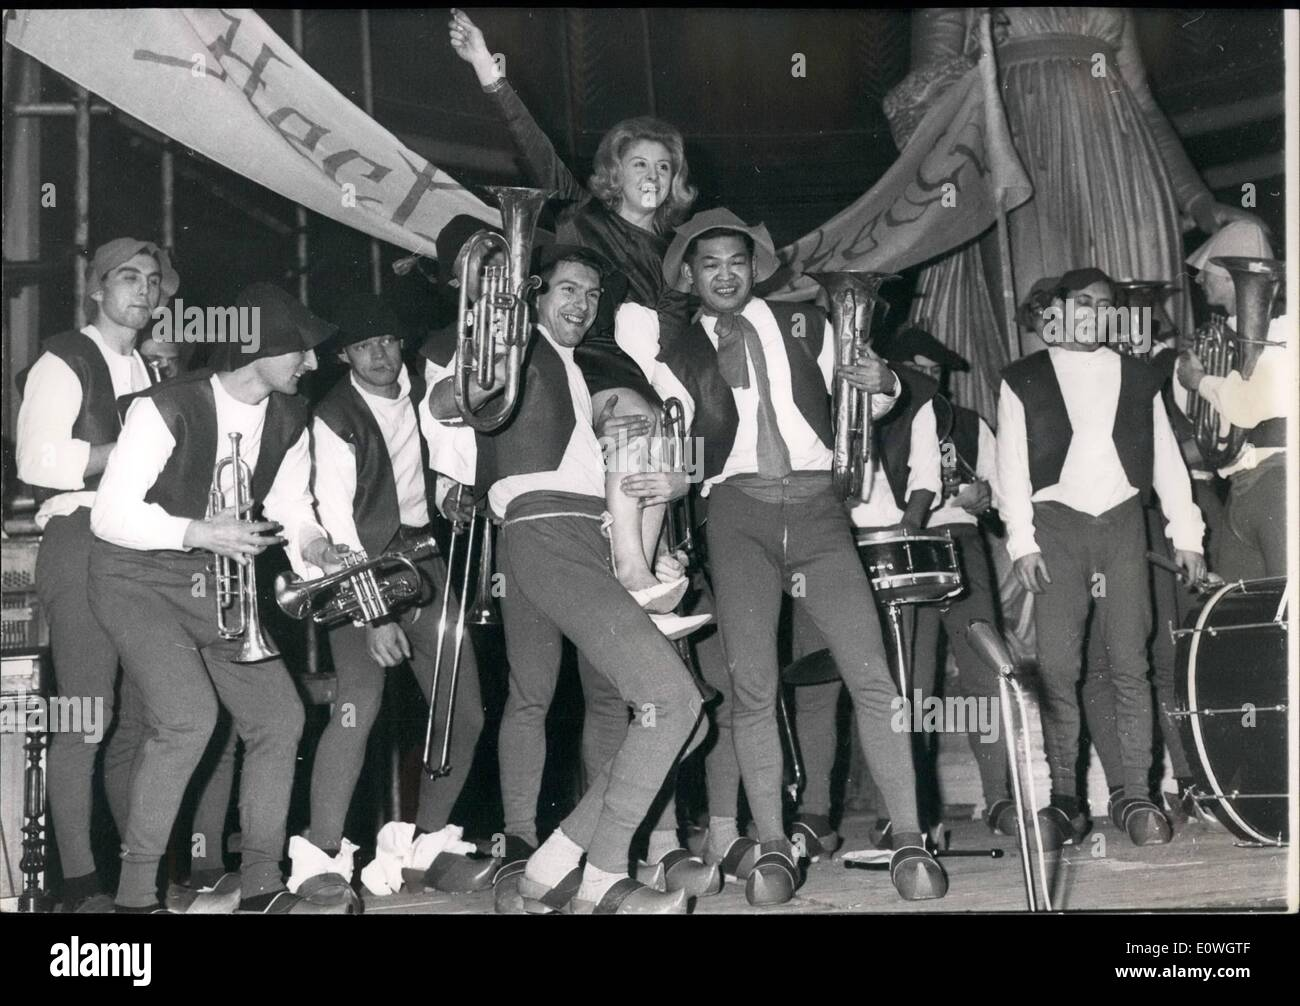 Dec. 12, 1962 - The Felue Band was vote the best band at the Fine Arts School during a contest held at the school's gala that was organized by students. The composer Claude Blondy, who wrote ''Clair de Lune a Maubeuge,'' wrote a tune called ''village party,'' which was the t - Stock Image